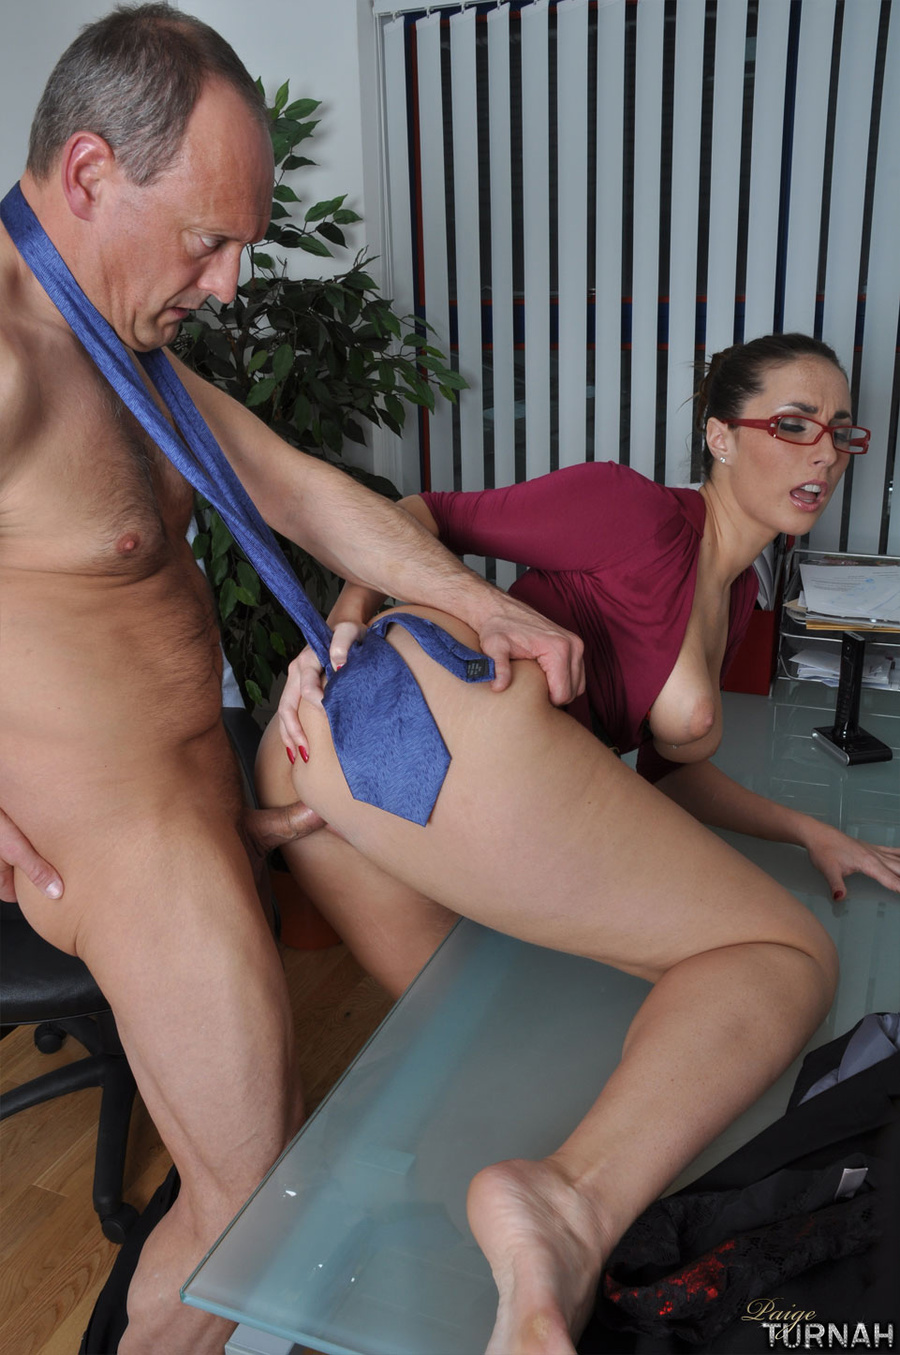 Lucky grey senior fucks his hot christmas present - 3 part 1